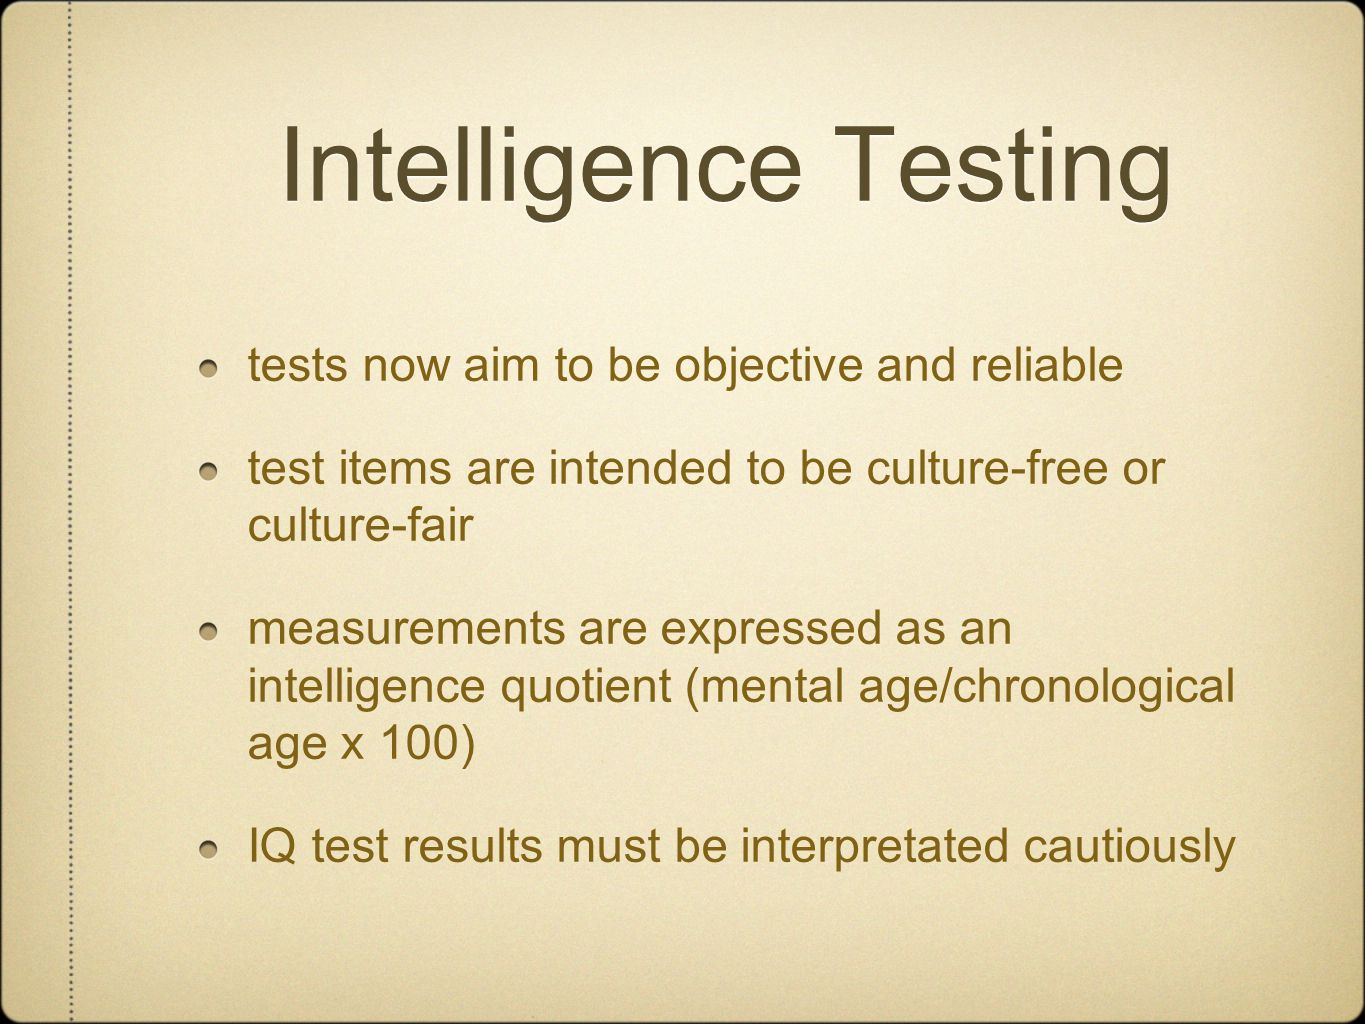 Intelligence Testing tests now aim to be objective and reliable test items are intended to be culture-free or culture-fair measurements are expressed as an intelligence quotient (mental age/chronological age x 100) IQ test results must be interpretated cautiously